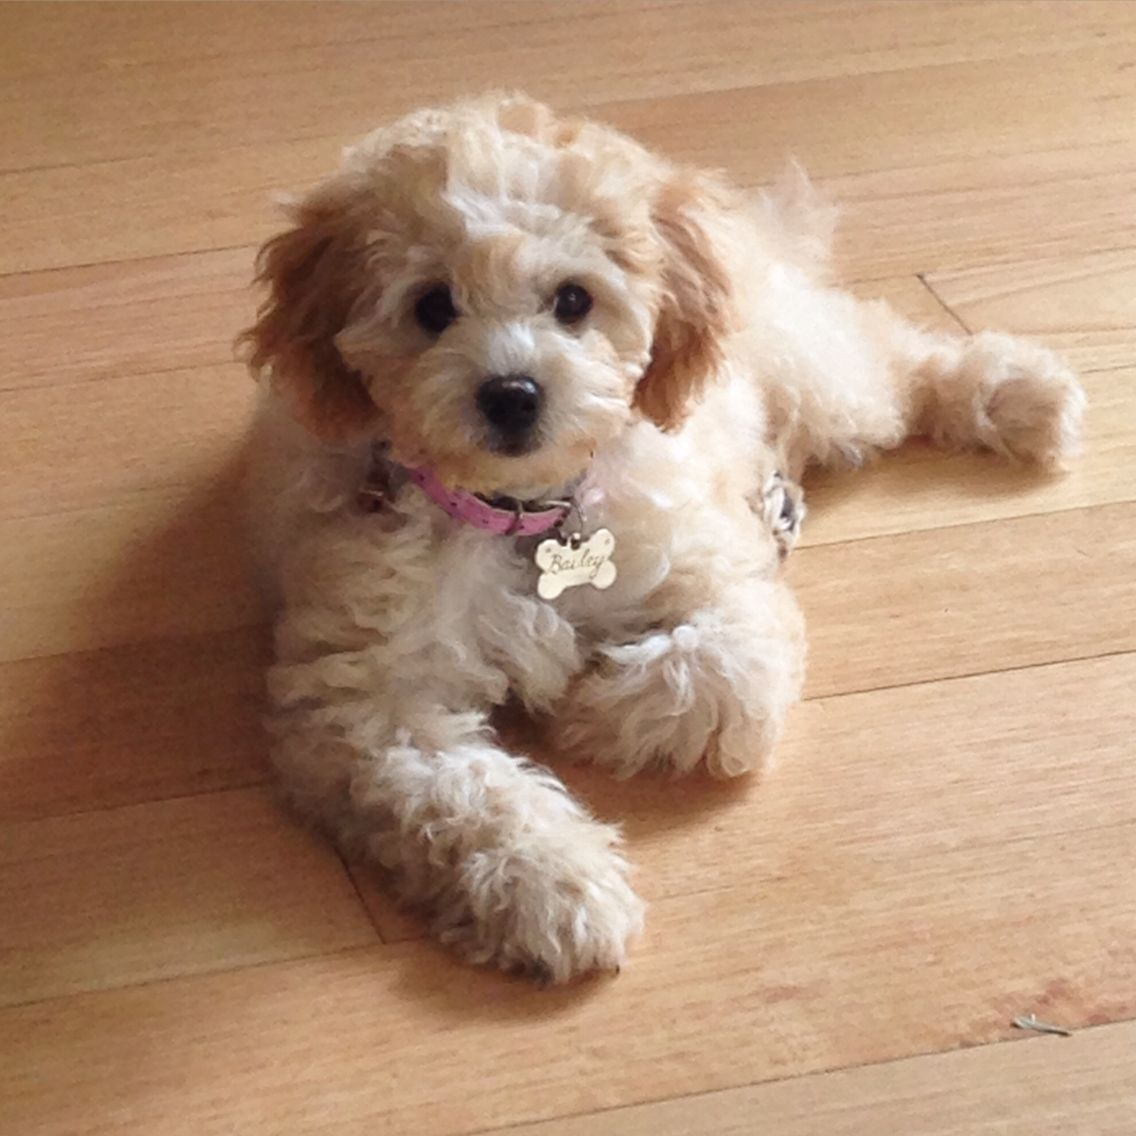 Bailey The Apricot Toy Cavoodle Adorable Puppy Cavoodle